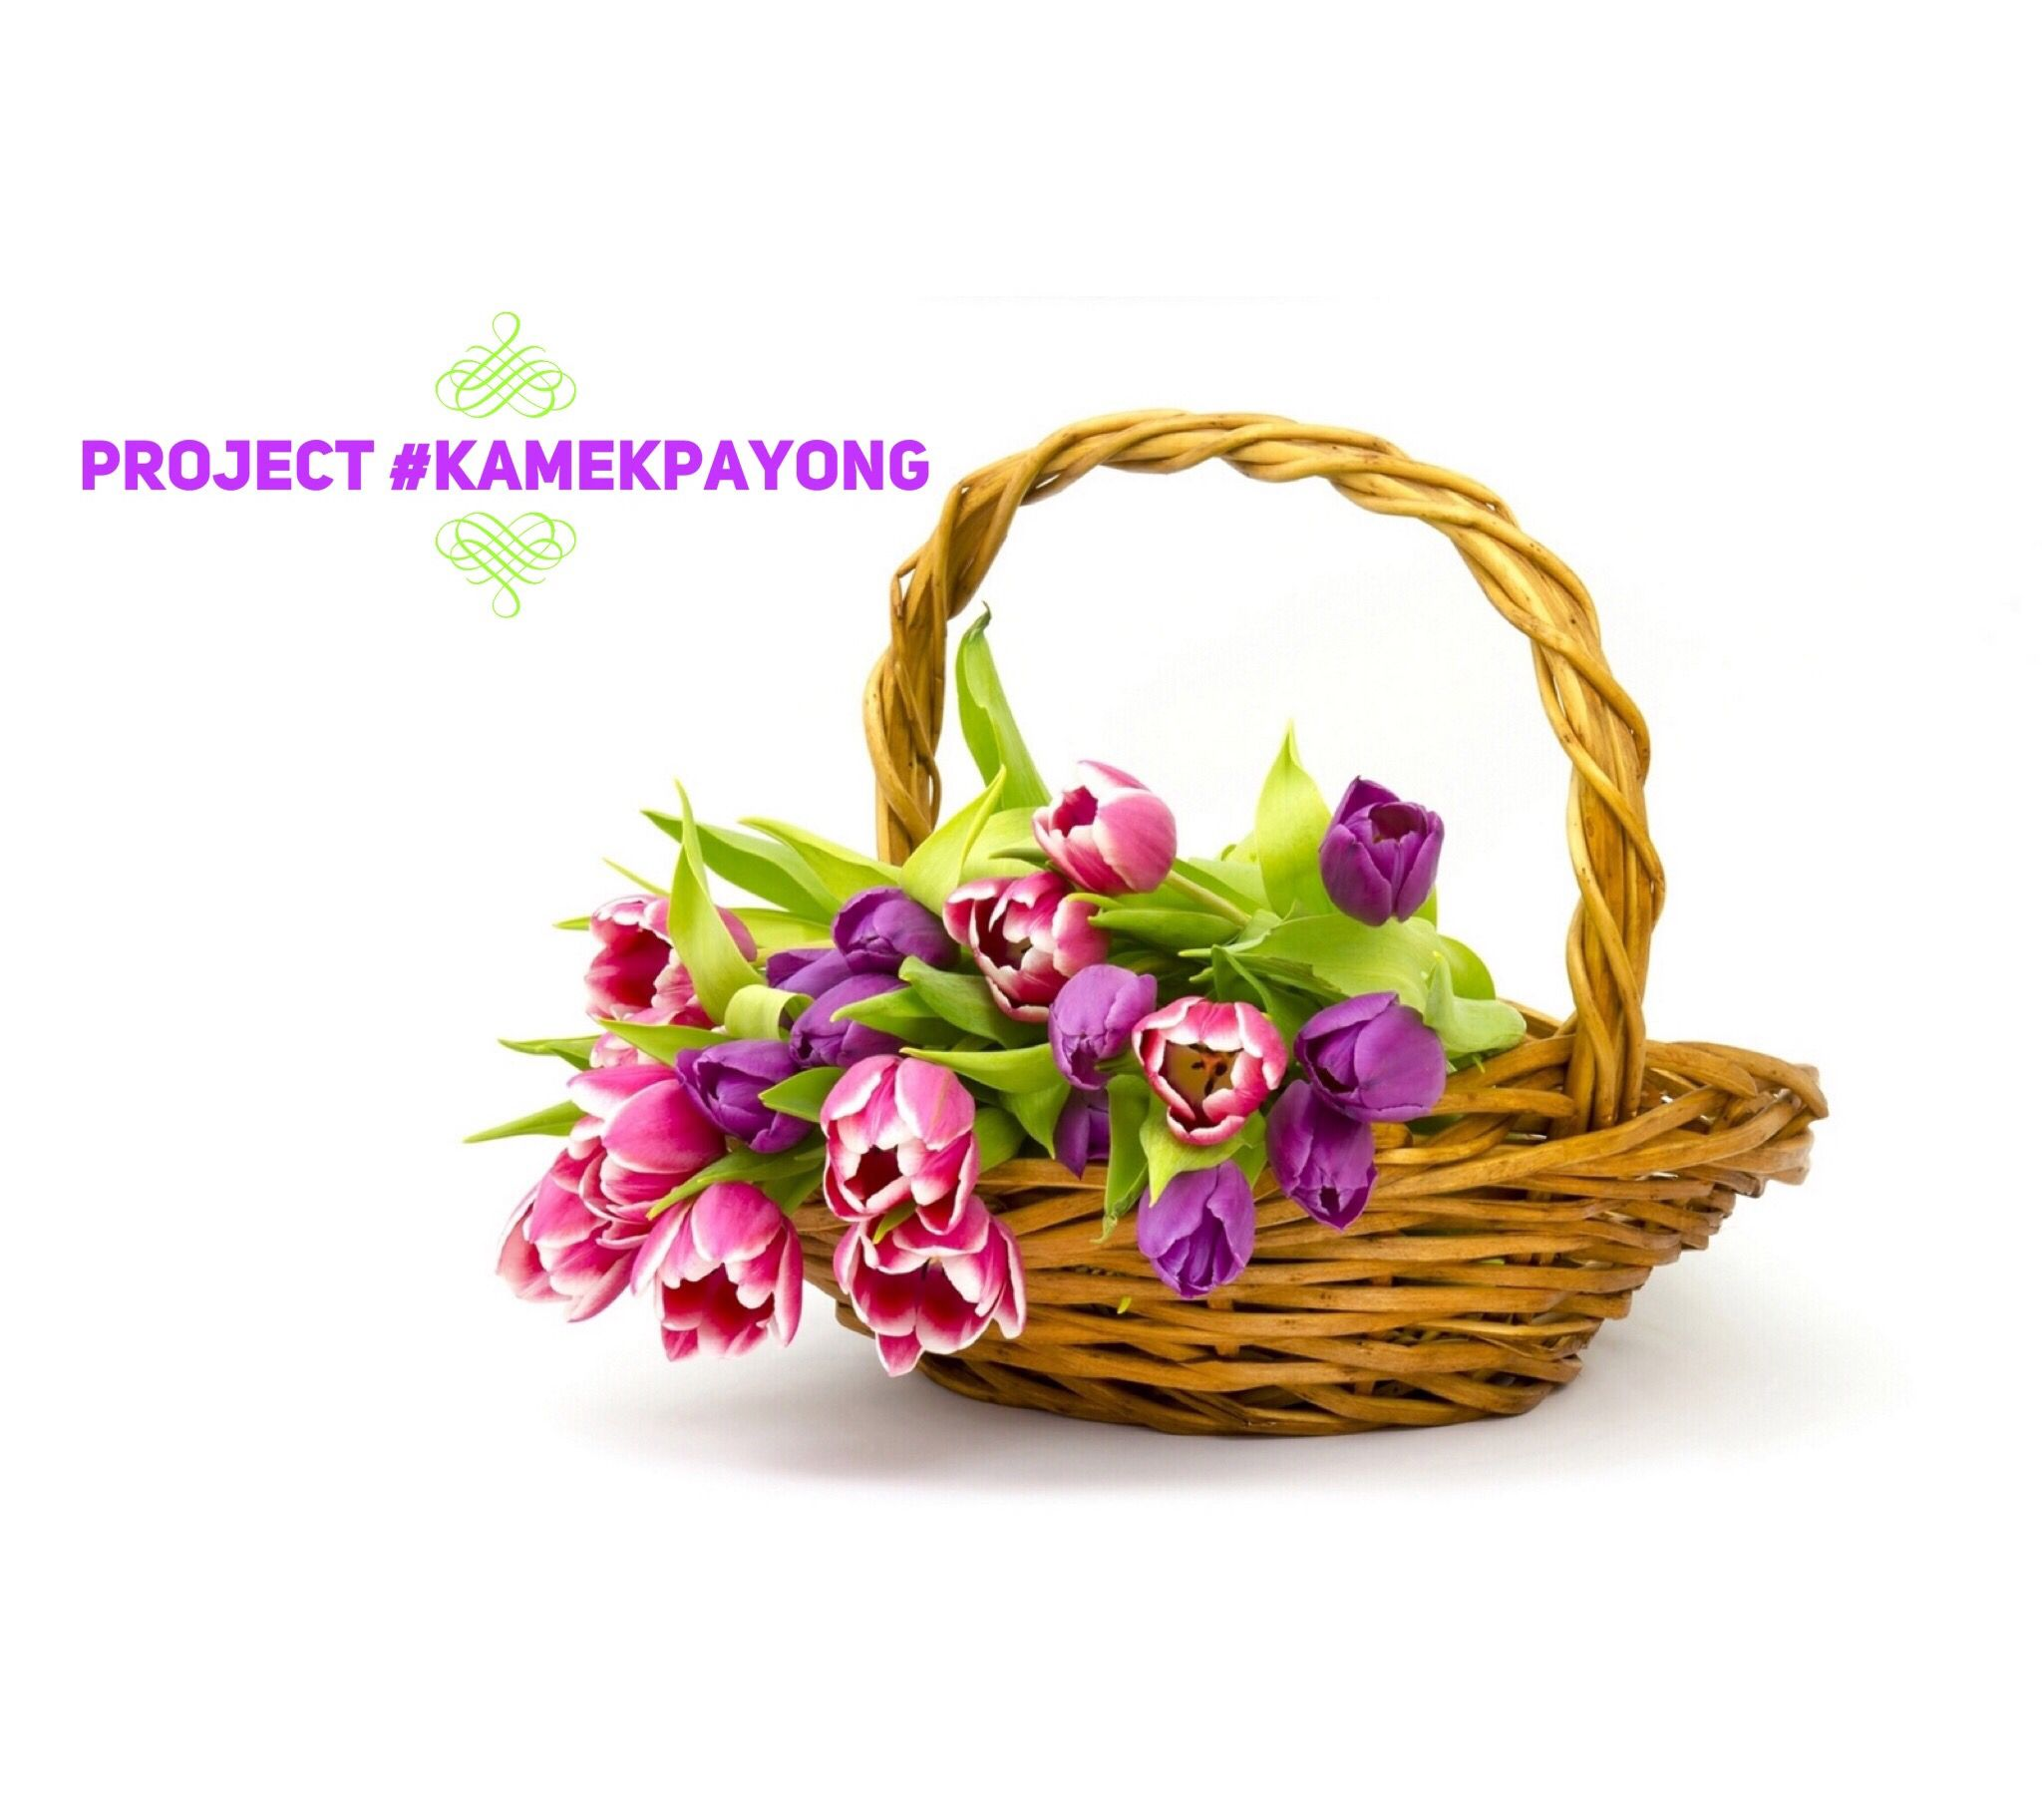 Investment can be like pretty flowers but takaful is the basket investment can be like pretty flowers but takaful is the basket that carries the flowers juez0ne kamekpayong izmirmasajfo